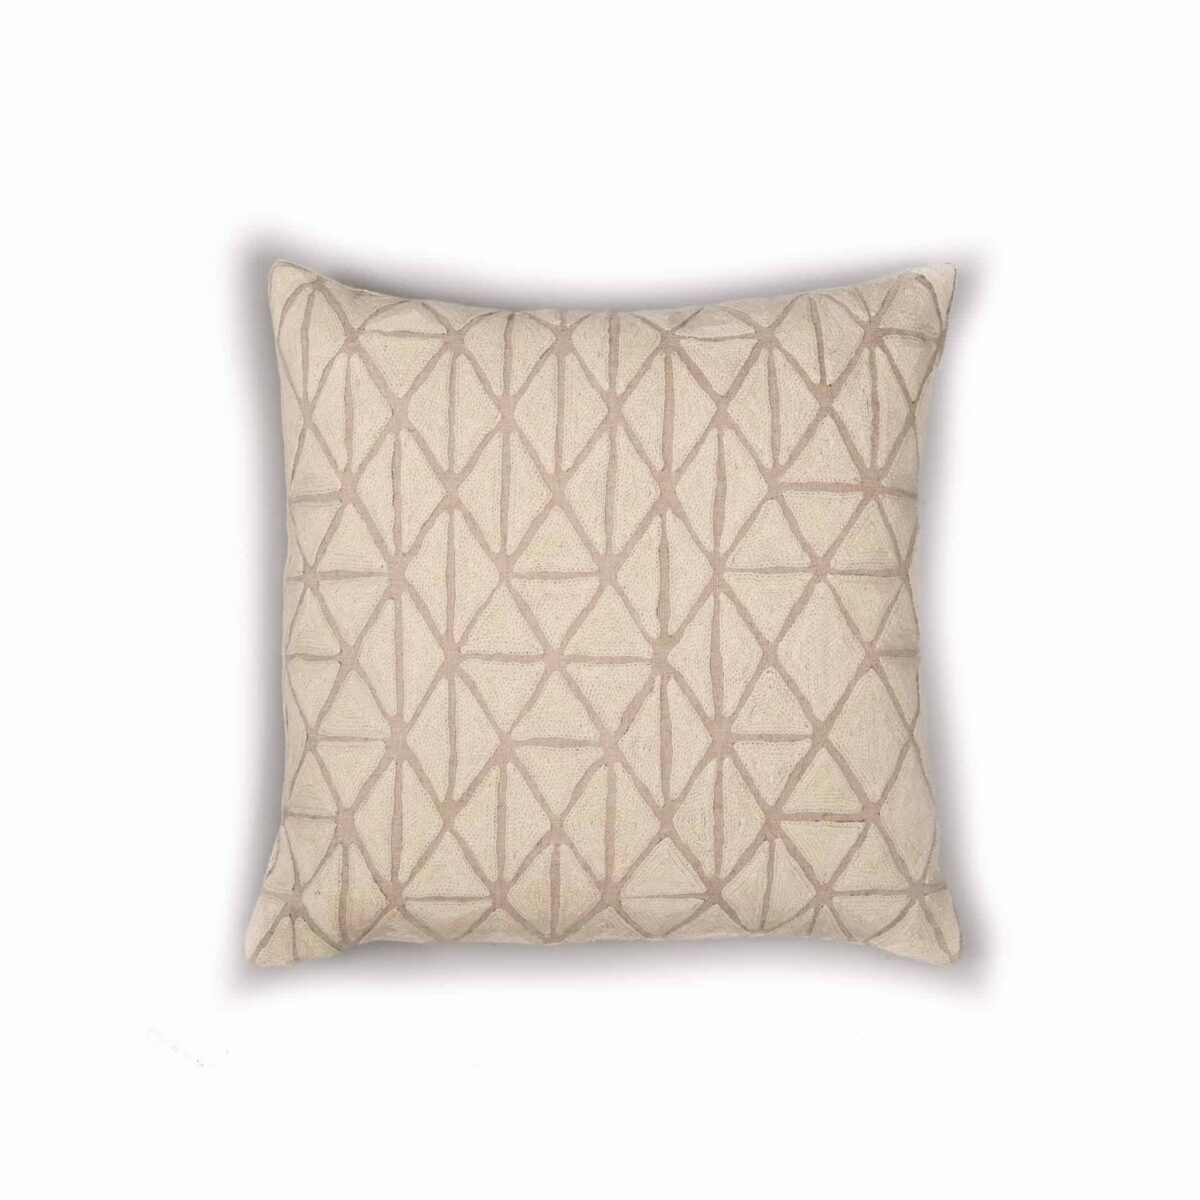 berber-cushion-ecru-natural-linen-1